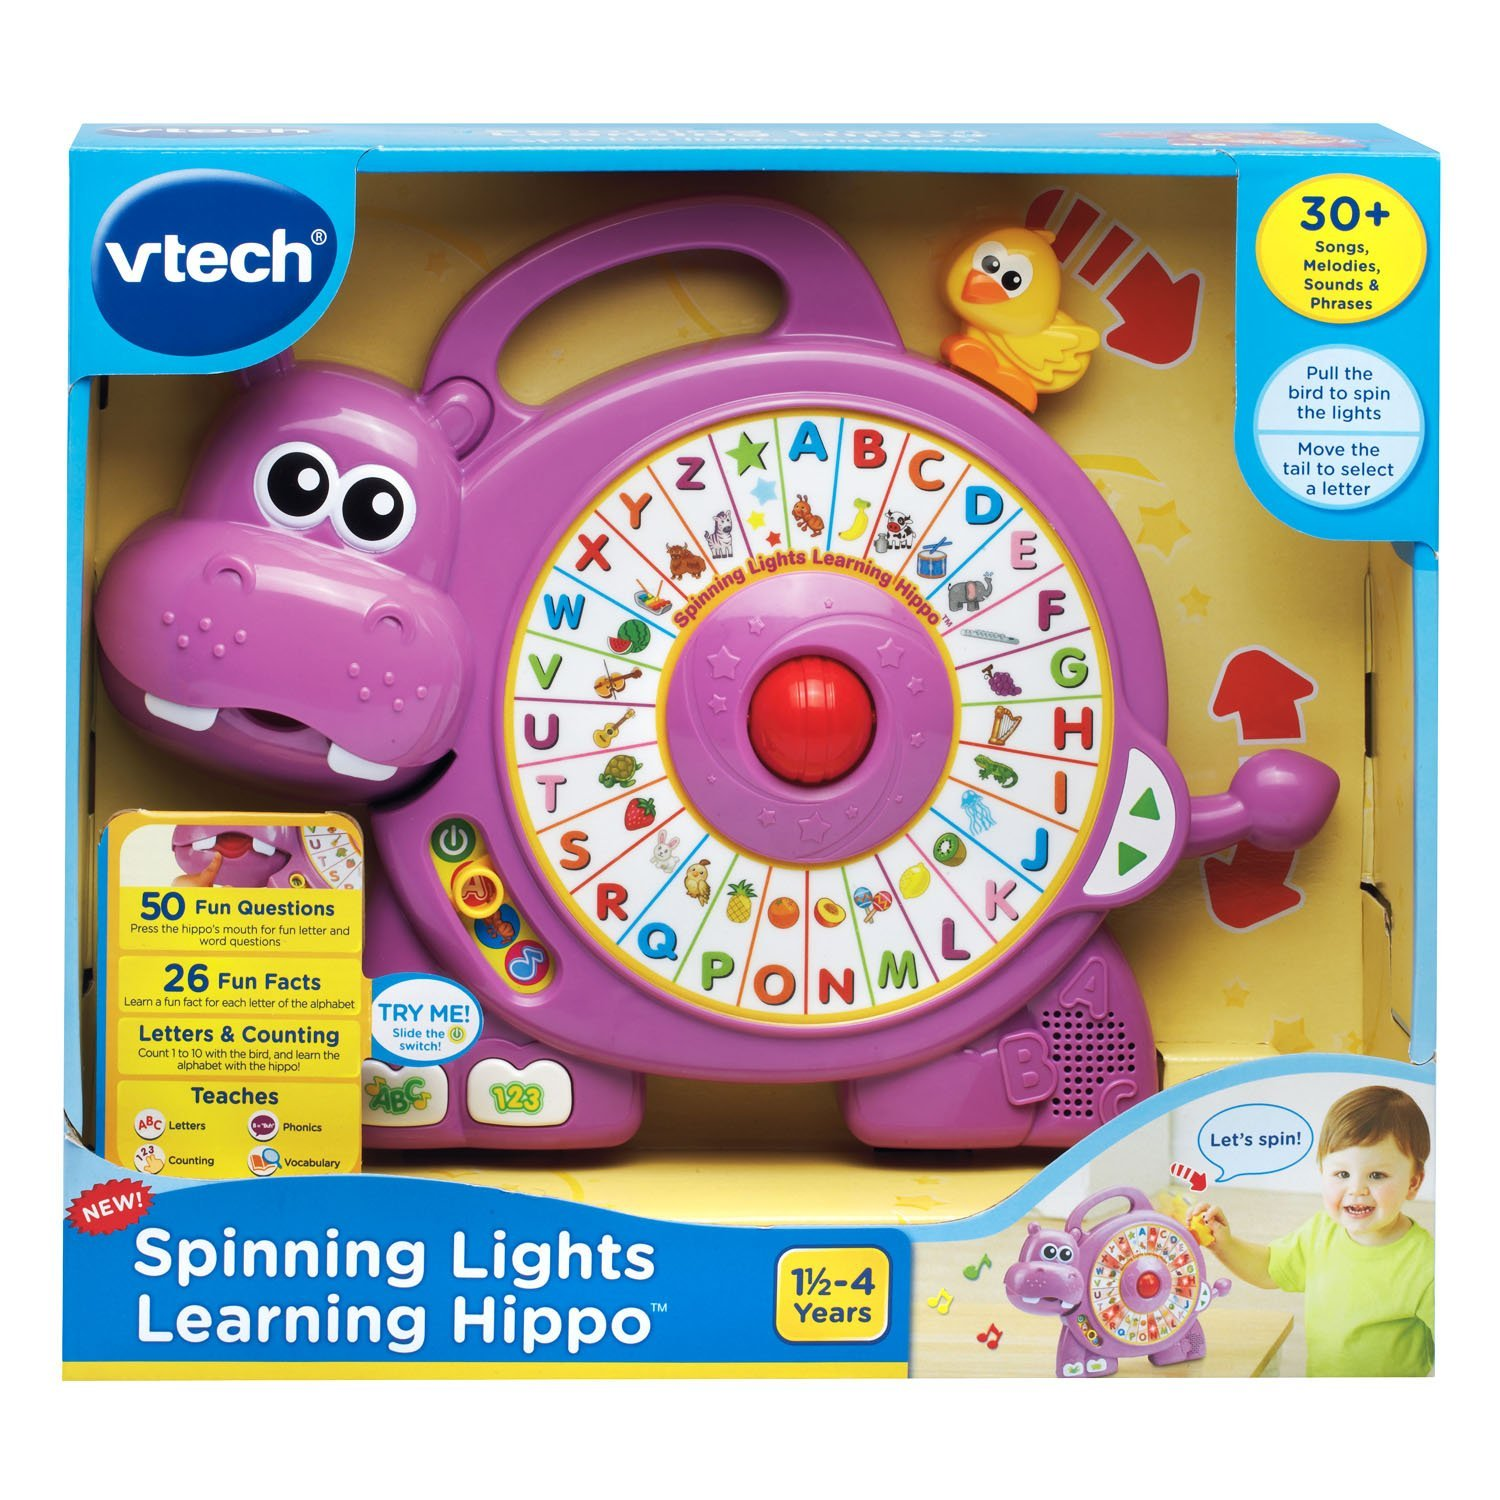 VTech Spinning Lights Learning Hippo 4littleboyz